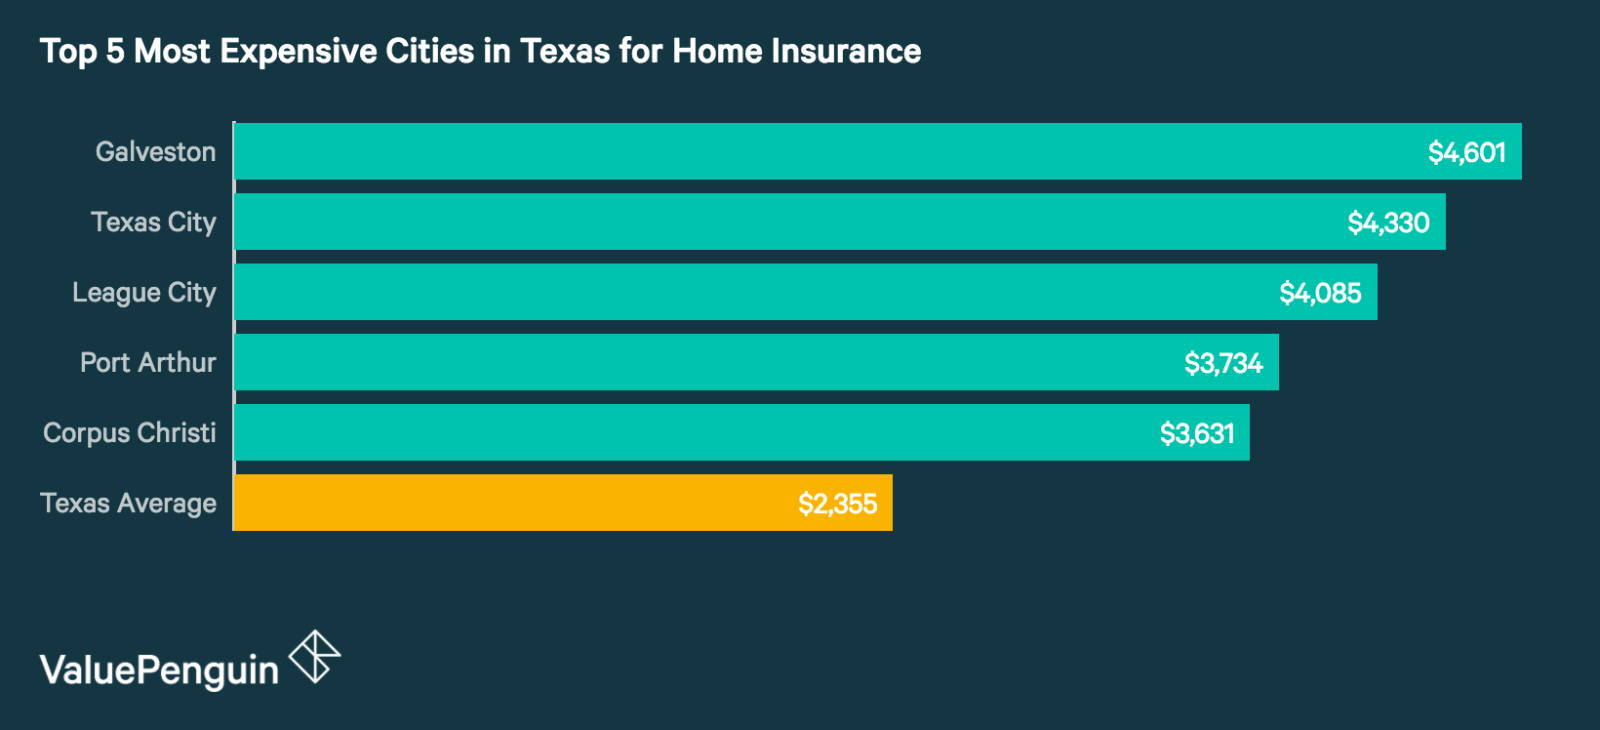 Top 5 Most Expensive Cities in Texas for Homeowners Insurance